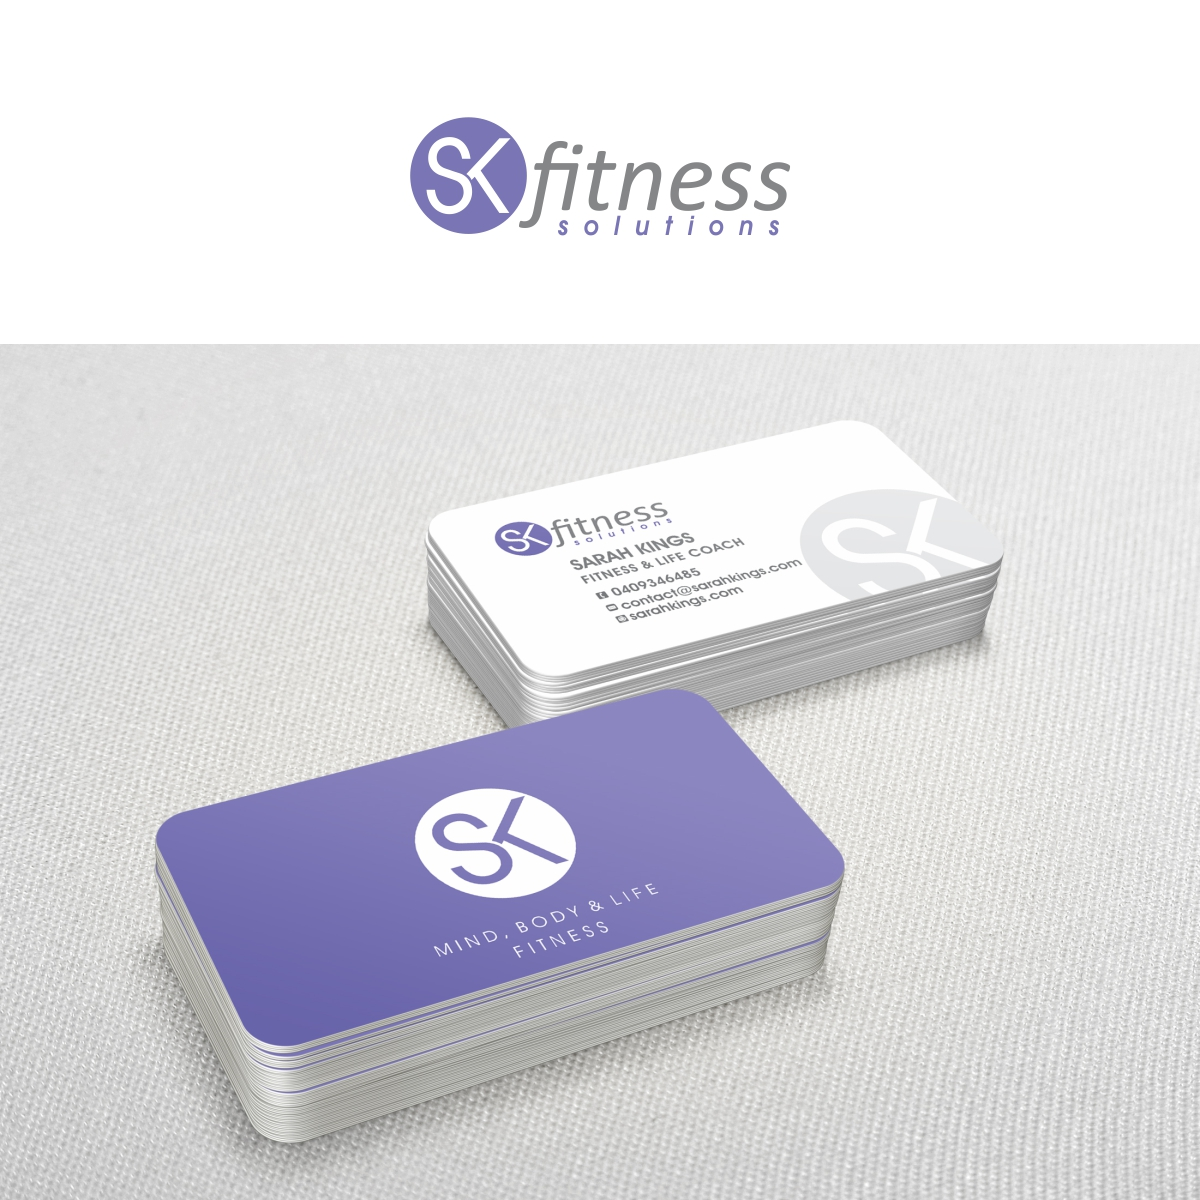 Life Coaching Business Card Design for a Company by nologo | Design ...